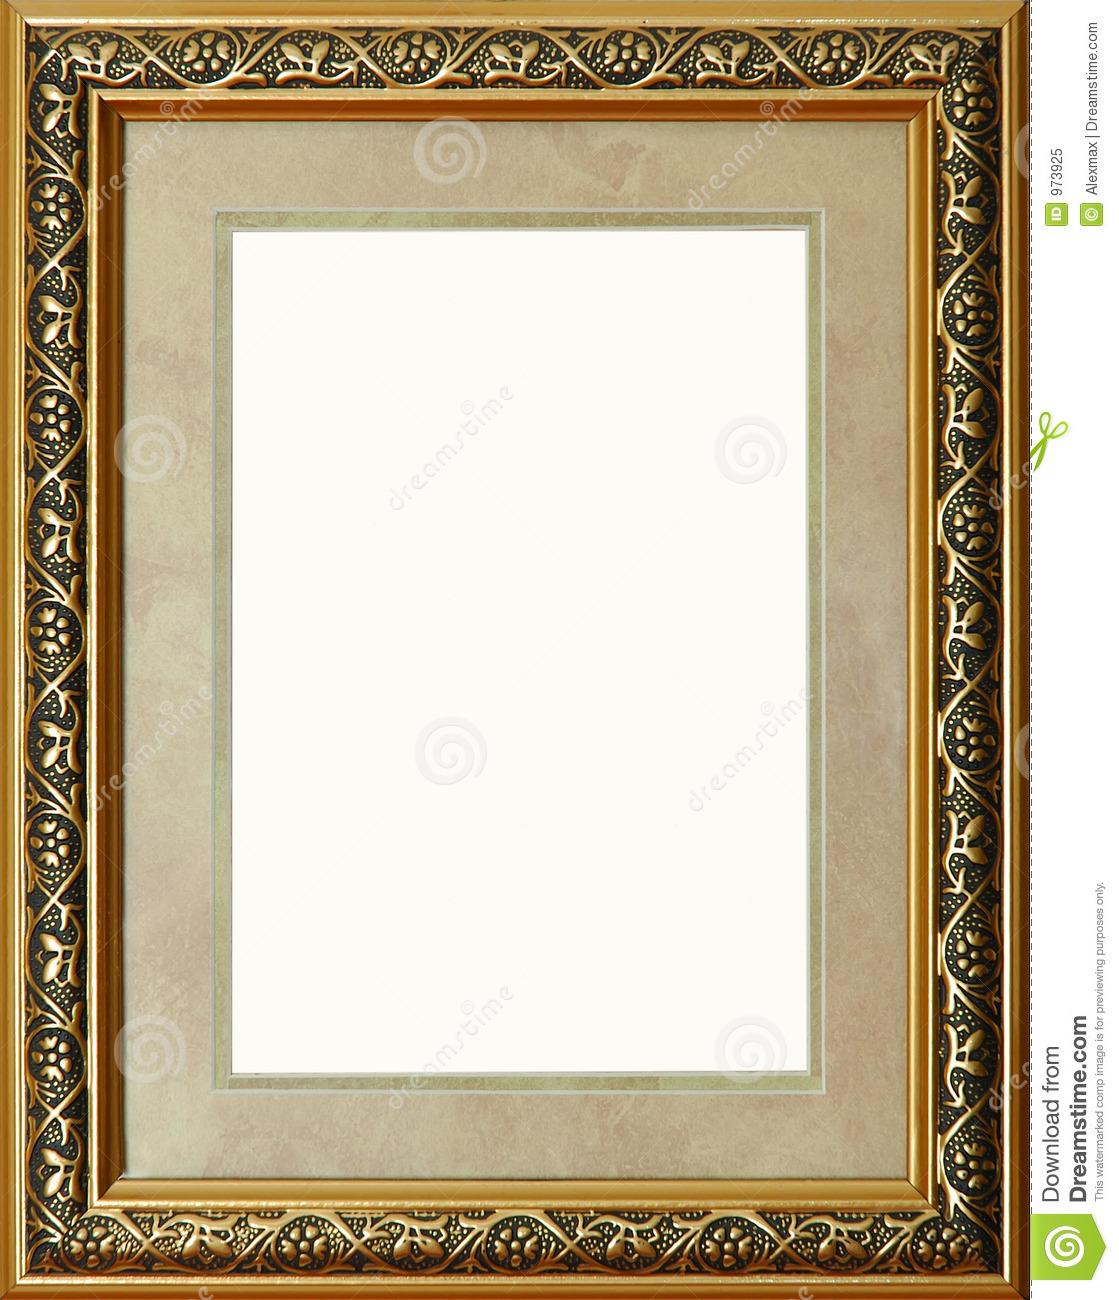 Antique Rustic Golden Picture Frame Isolated Stock Image